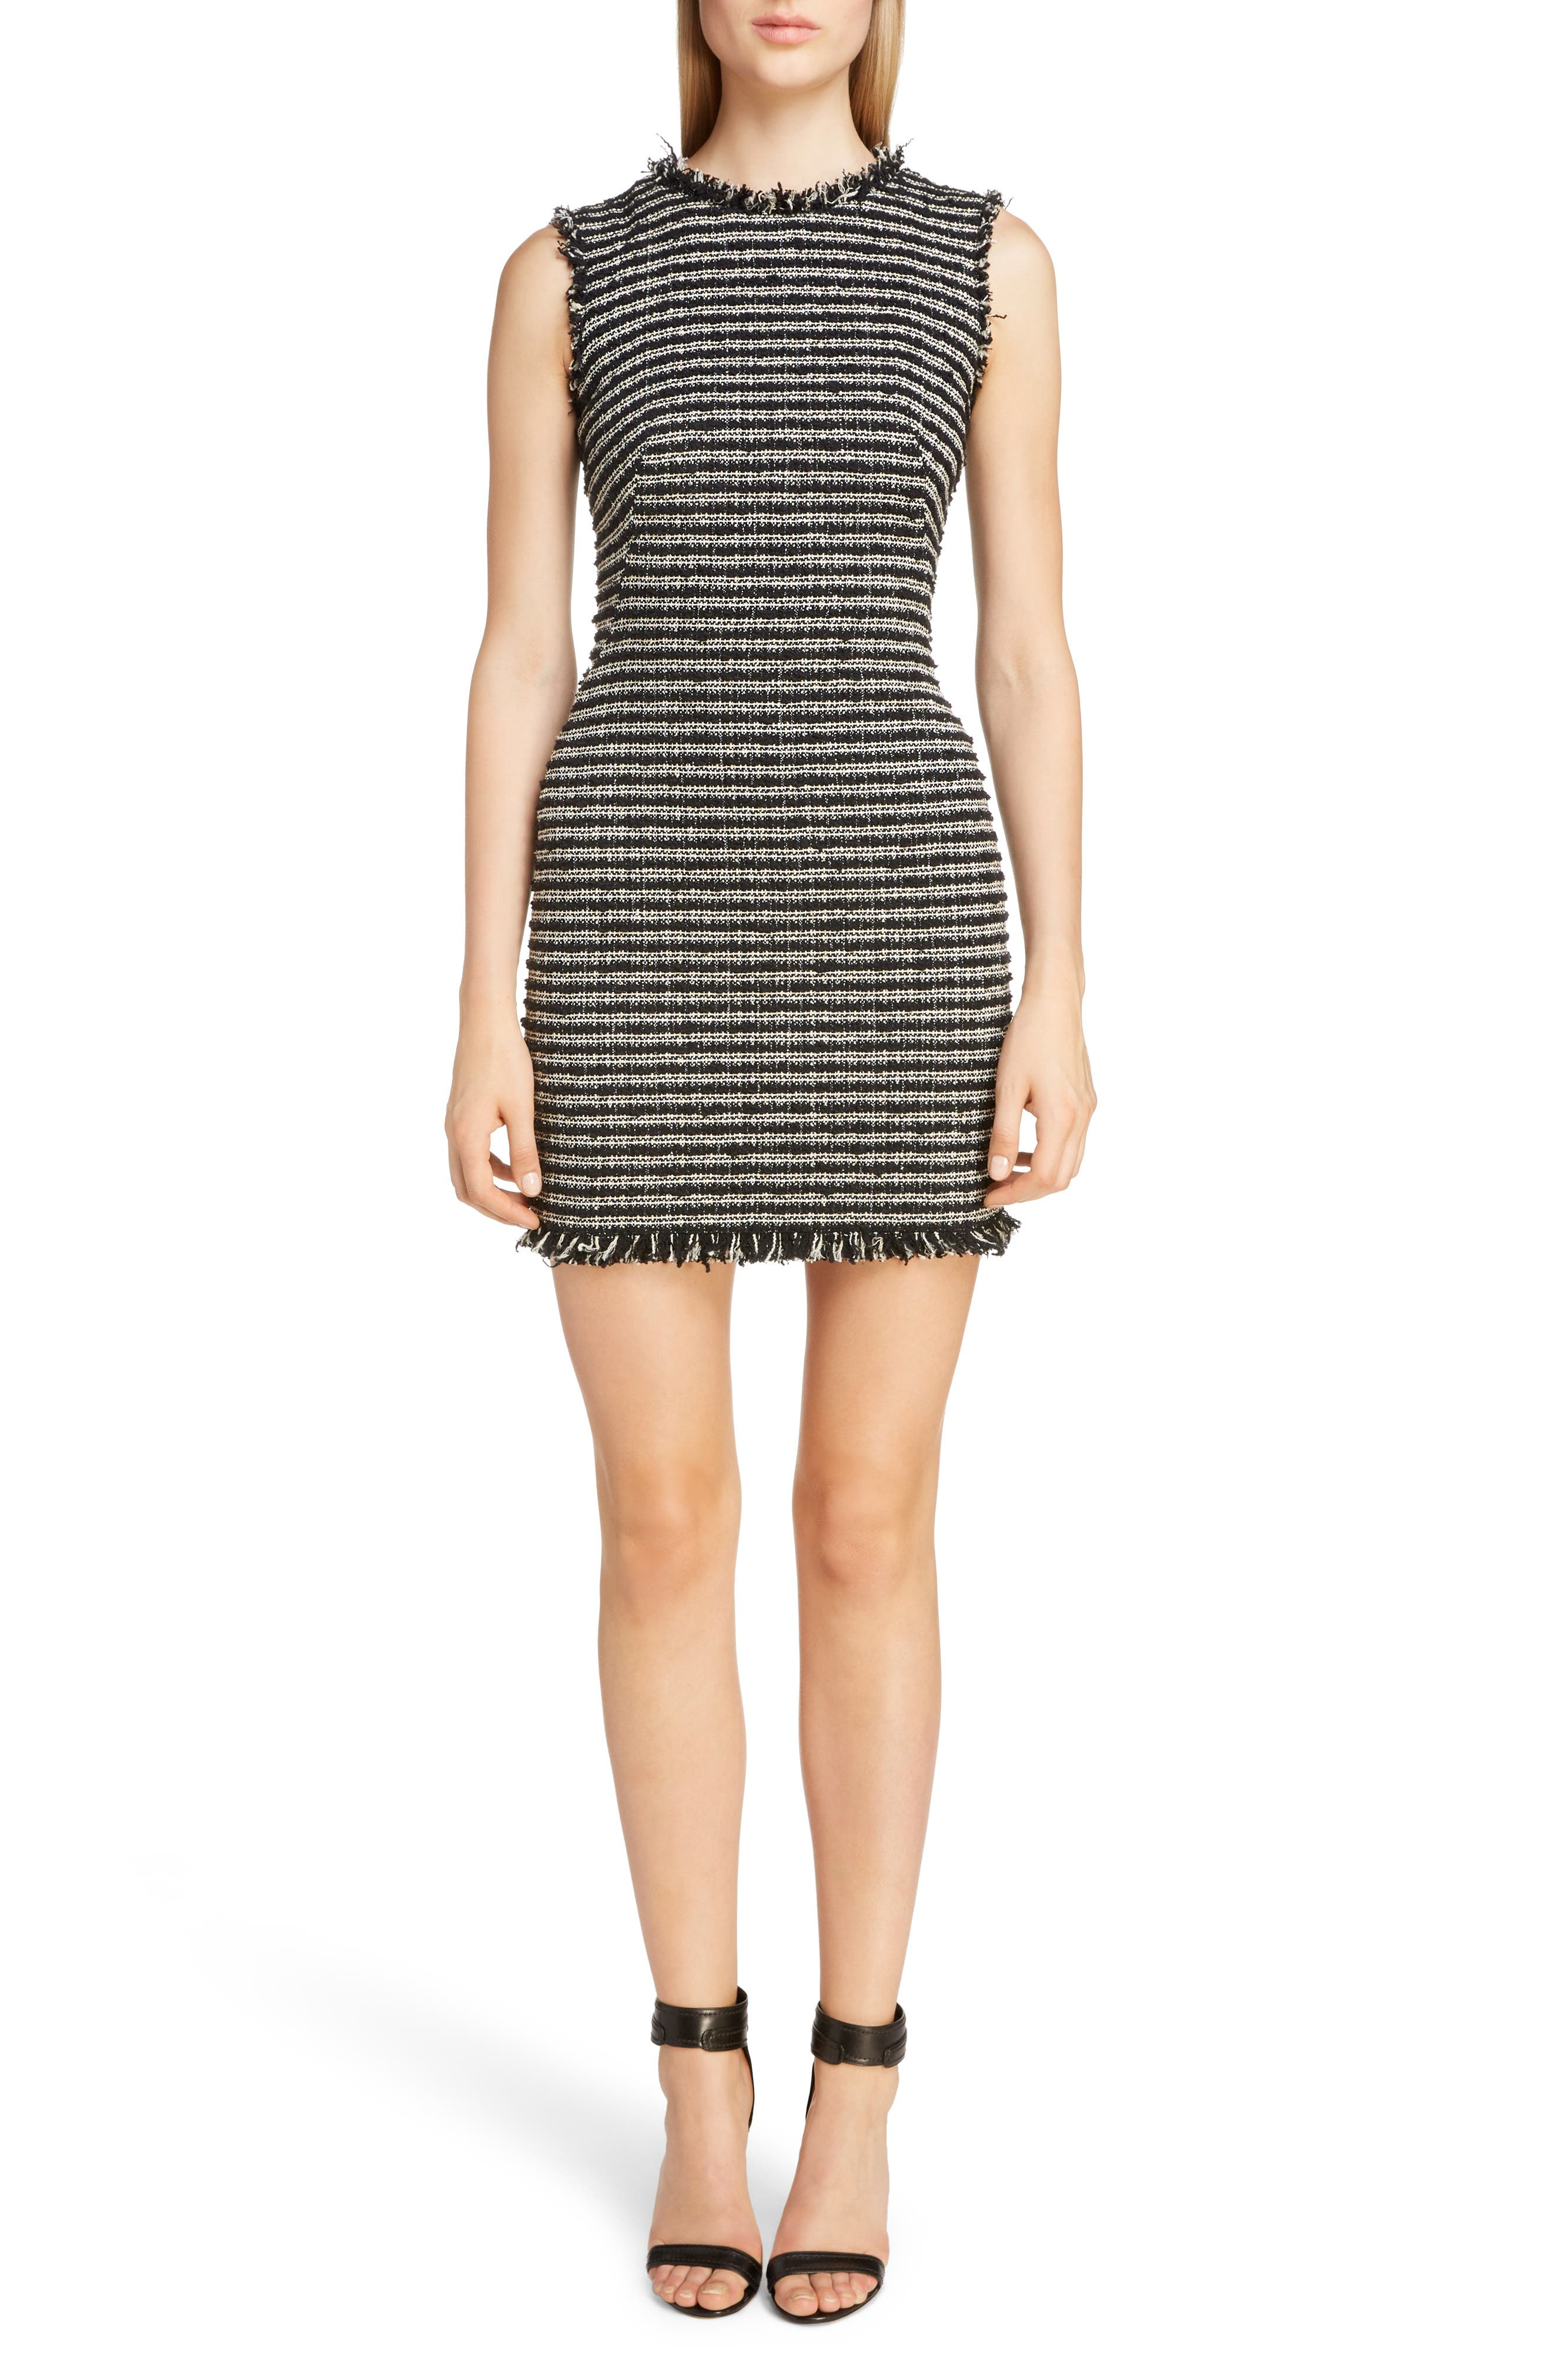 Alexander Mcqueen Frayed Tweed Minidress, 8 IT - Black